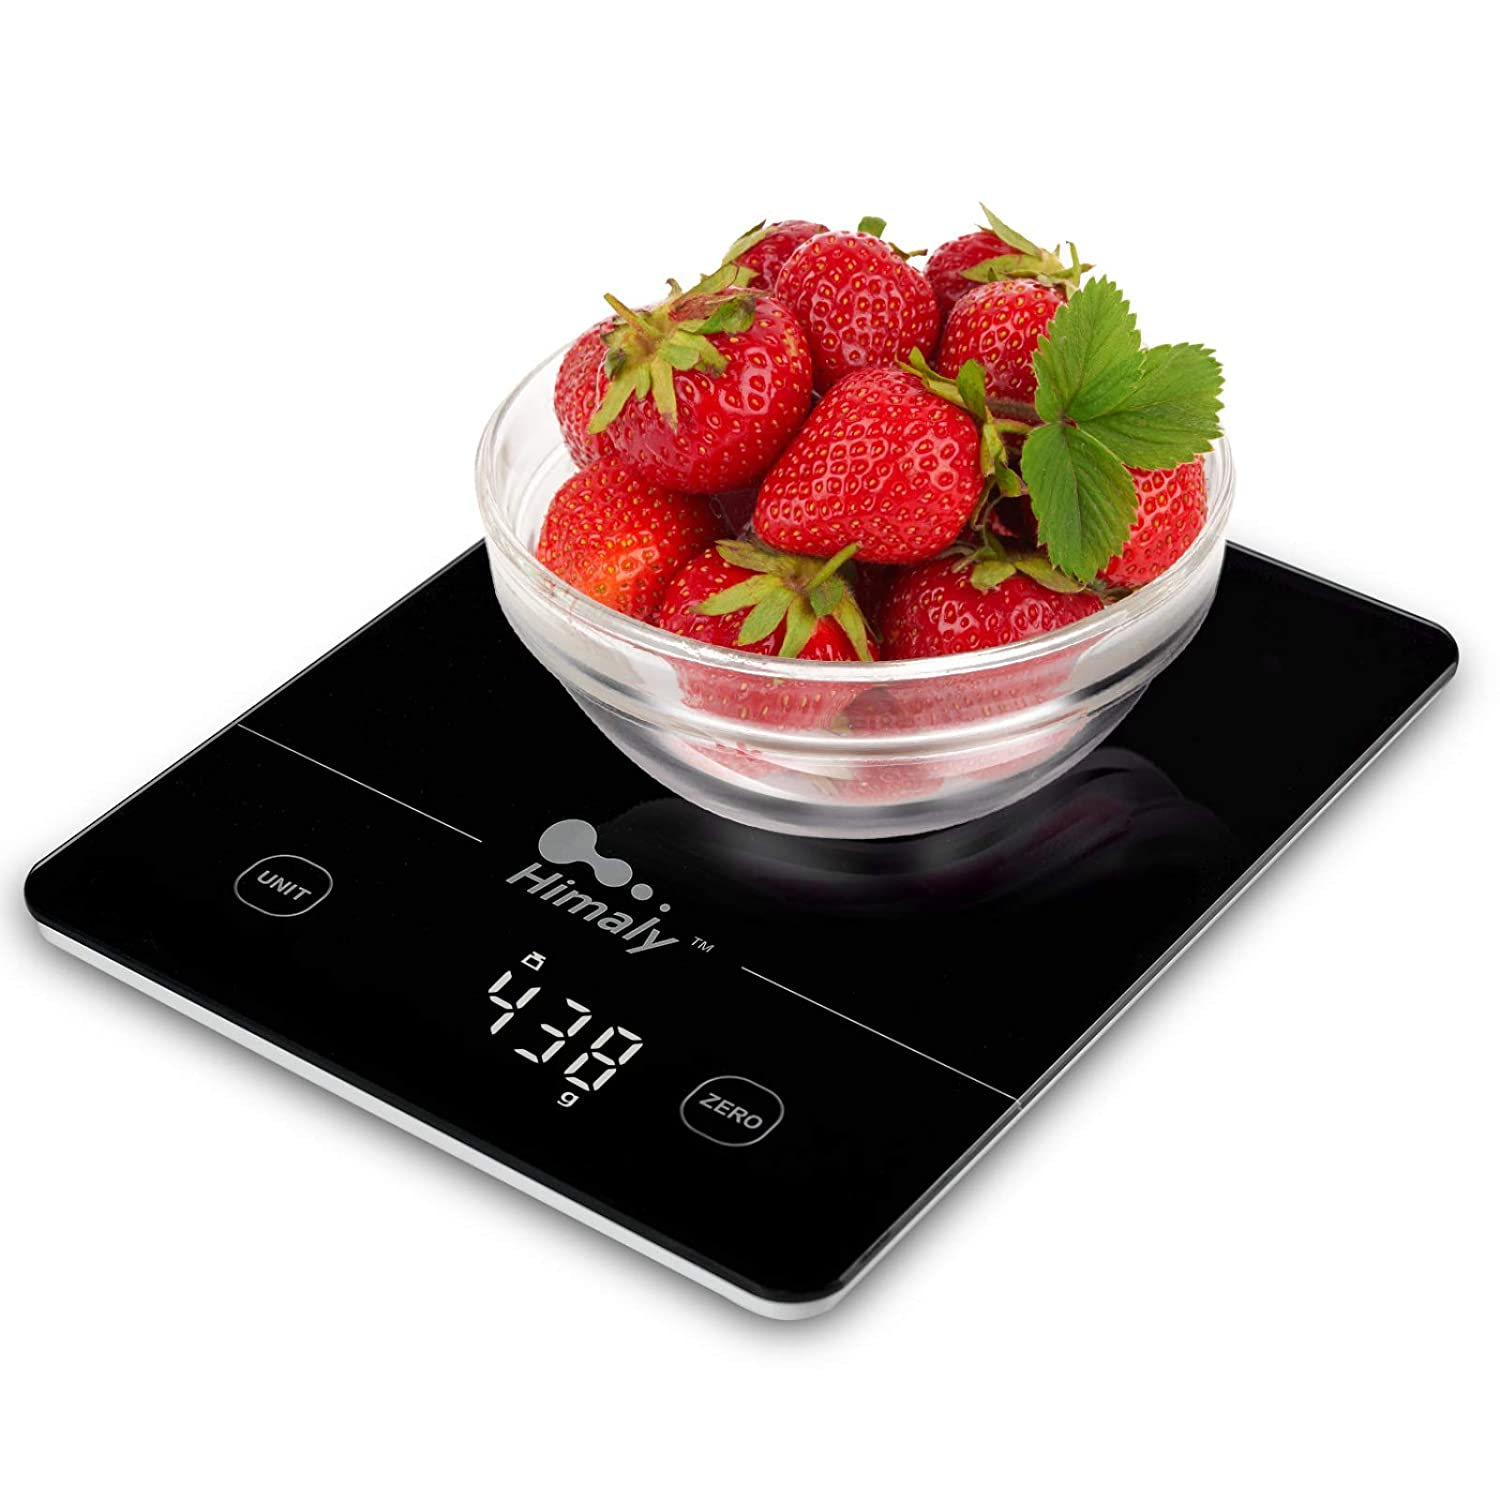 Digital Food Scale, 11 lbs/5kg Kitchen Scale Measures in 4 Units, Multifunction Weight Scale for Cooking, Baking, Food and Liquid, Easy Clean Touch Button Tempered Glass Panel with LED Display